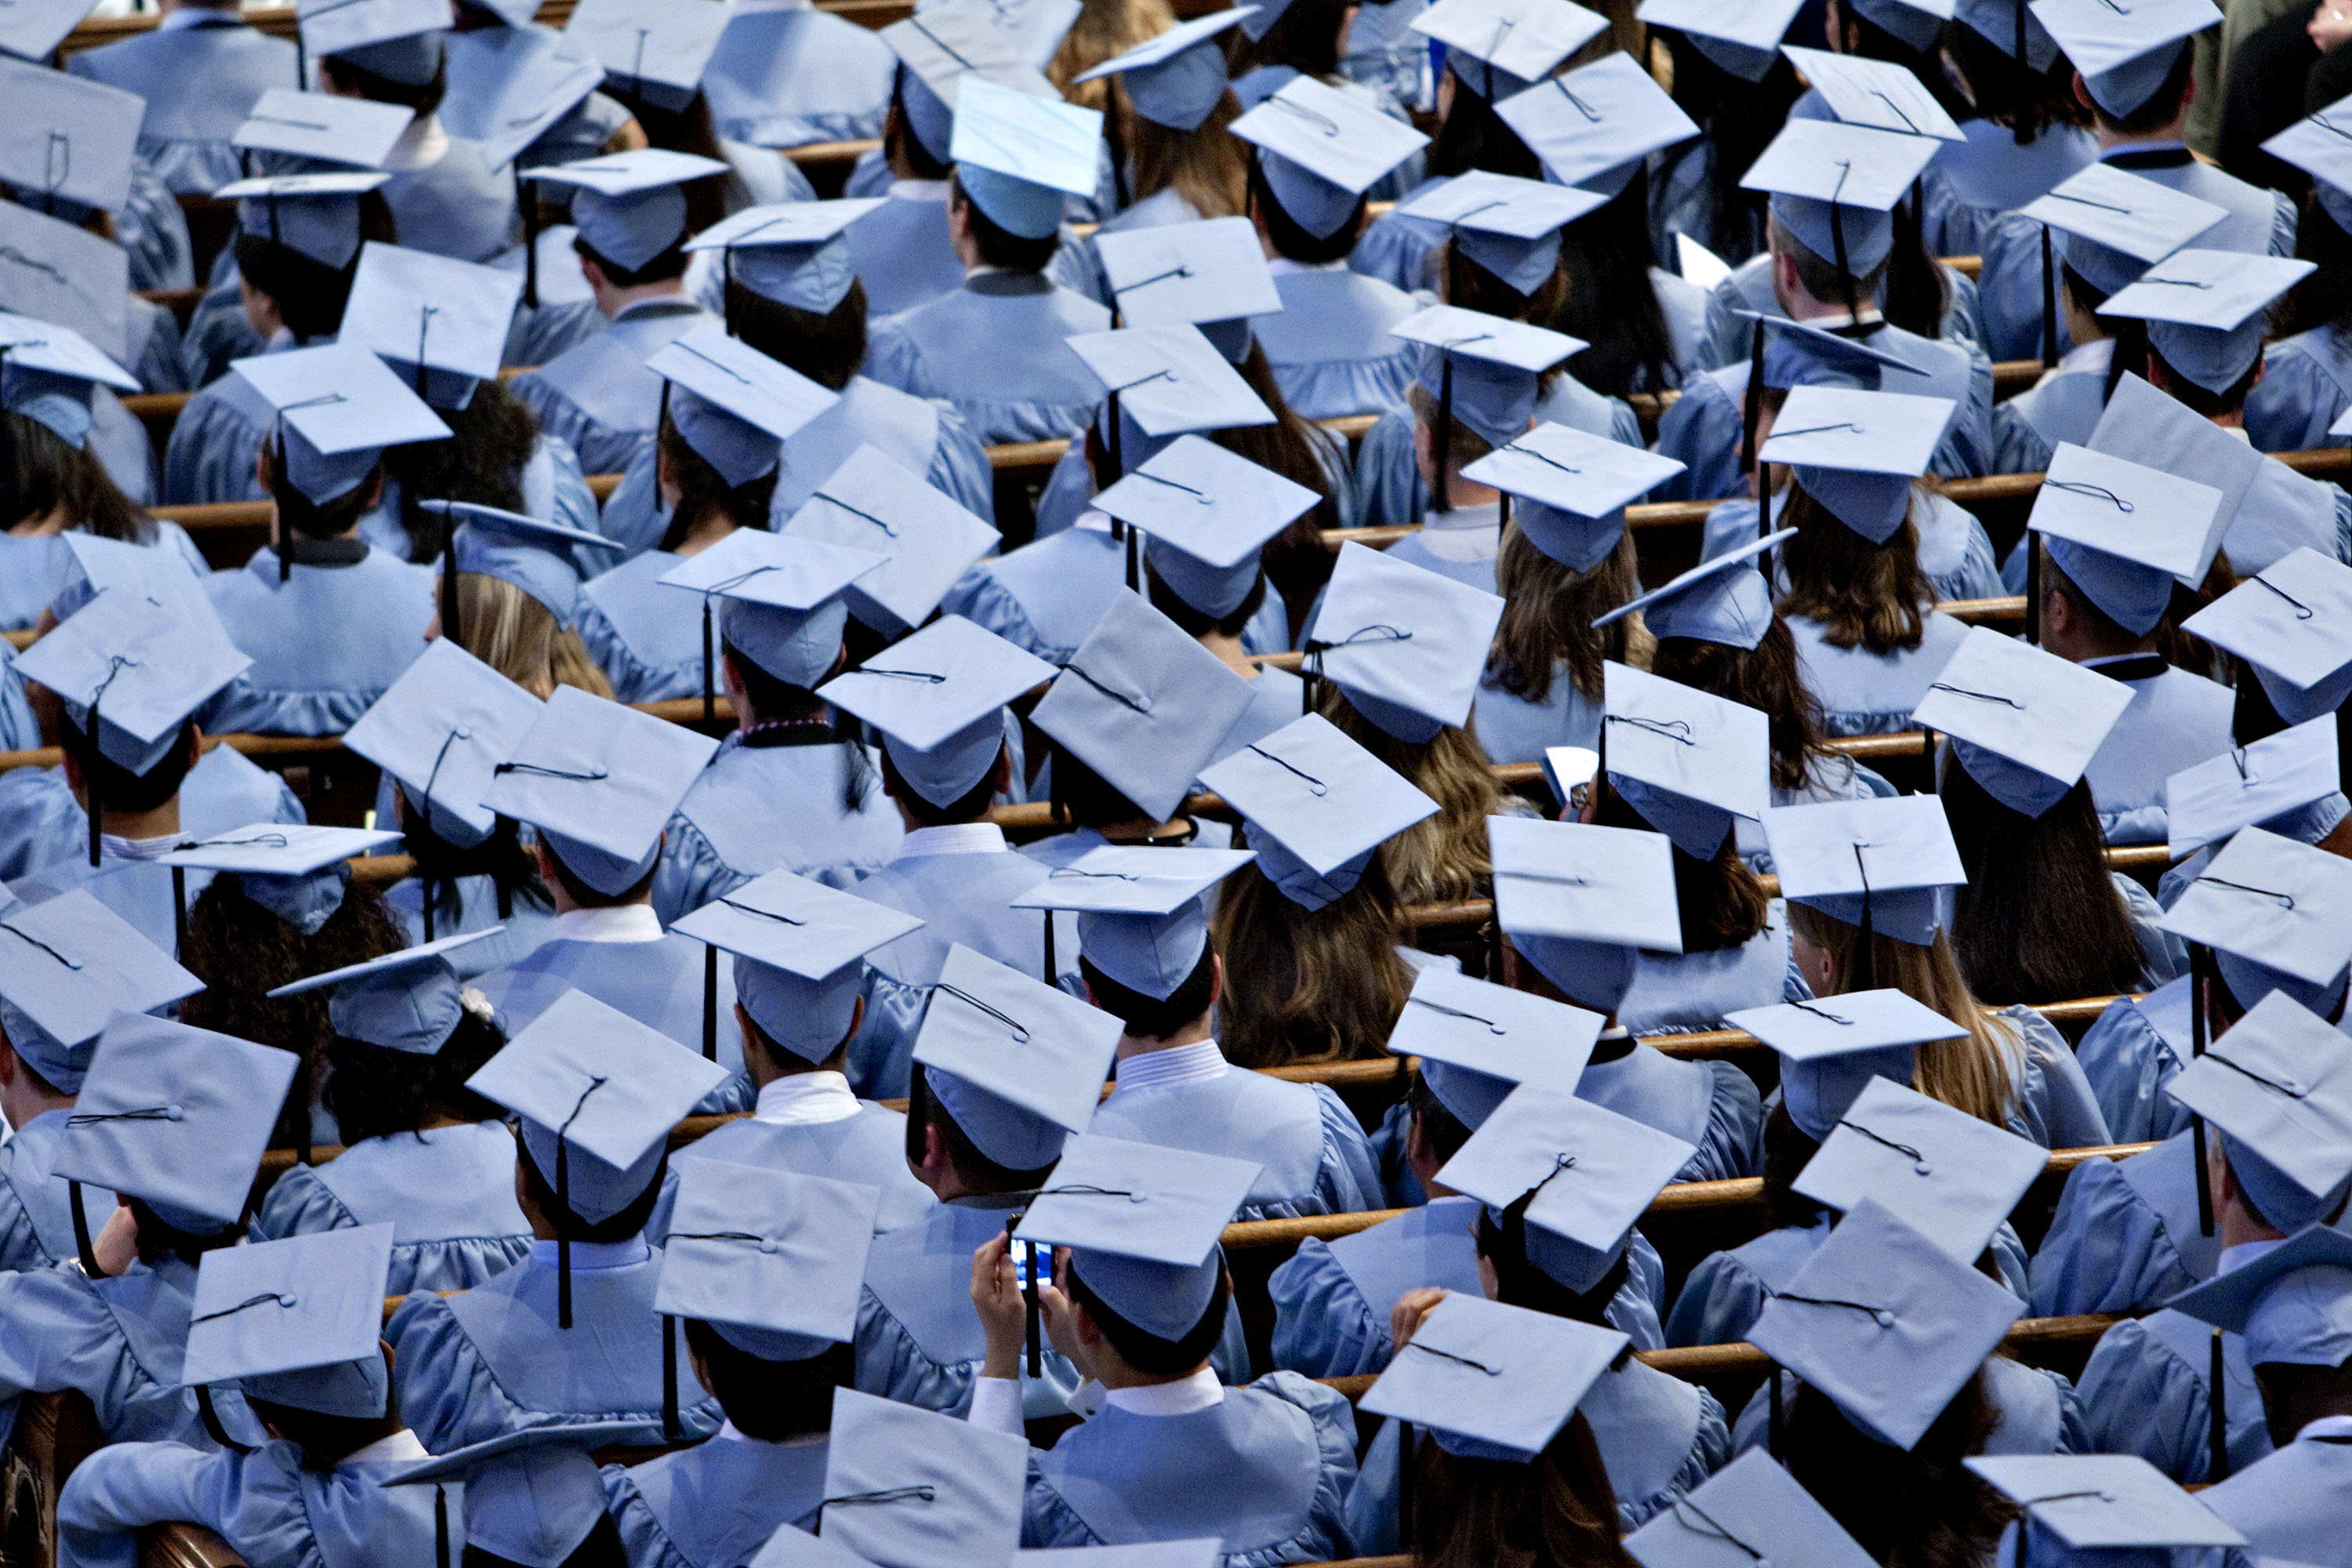 washingtonpost.com - Jeff Selingo - How the Great Recession changed higher education forever